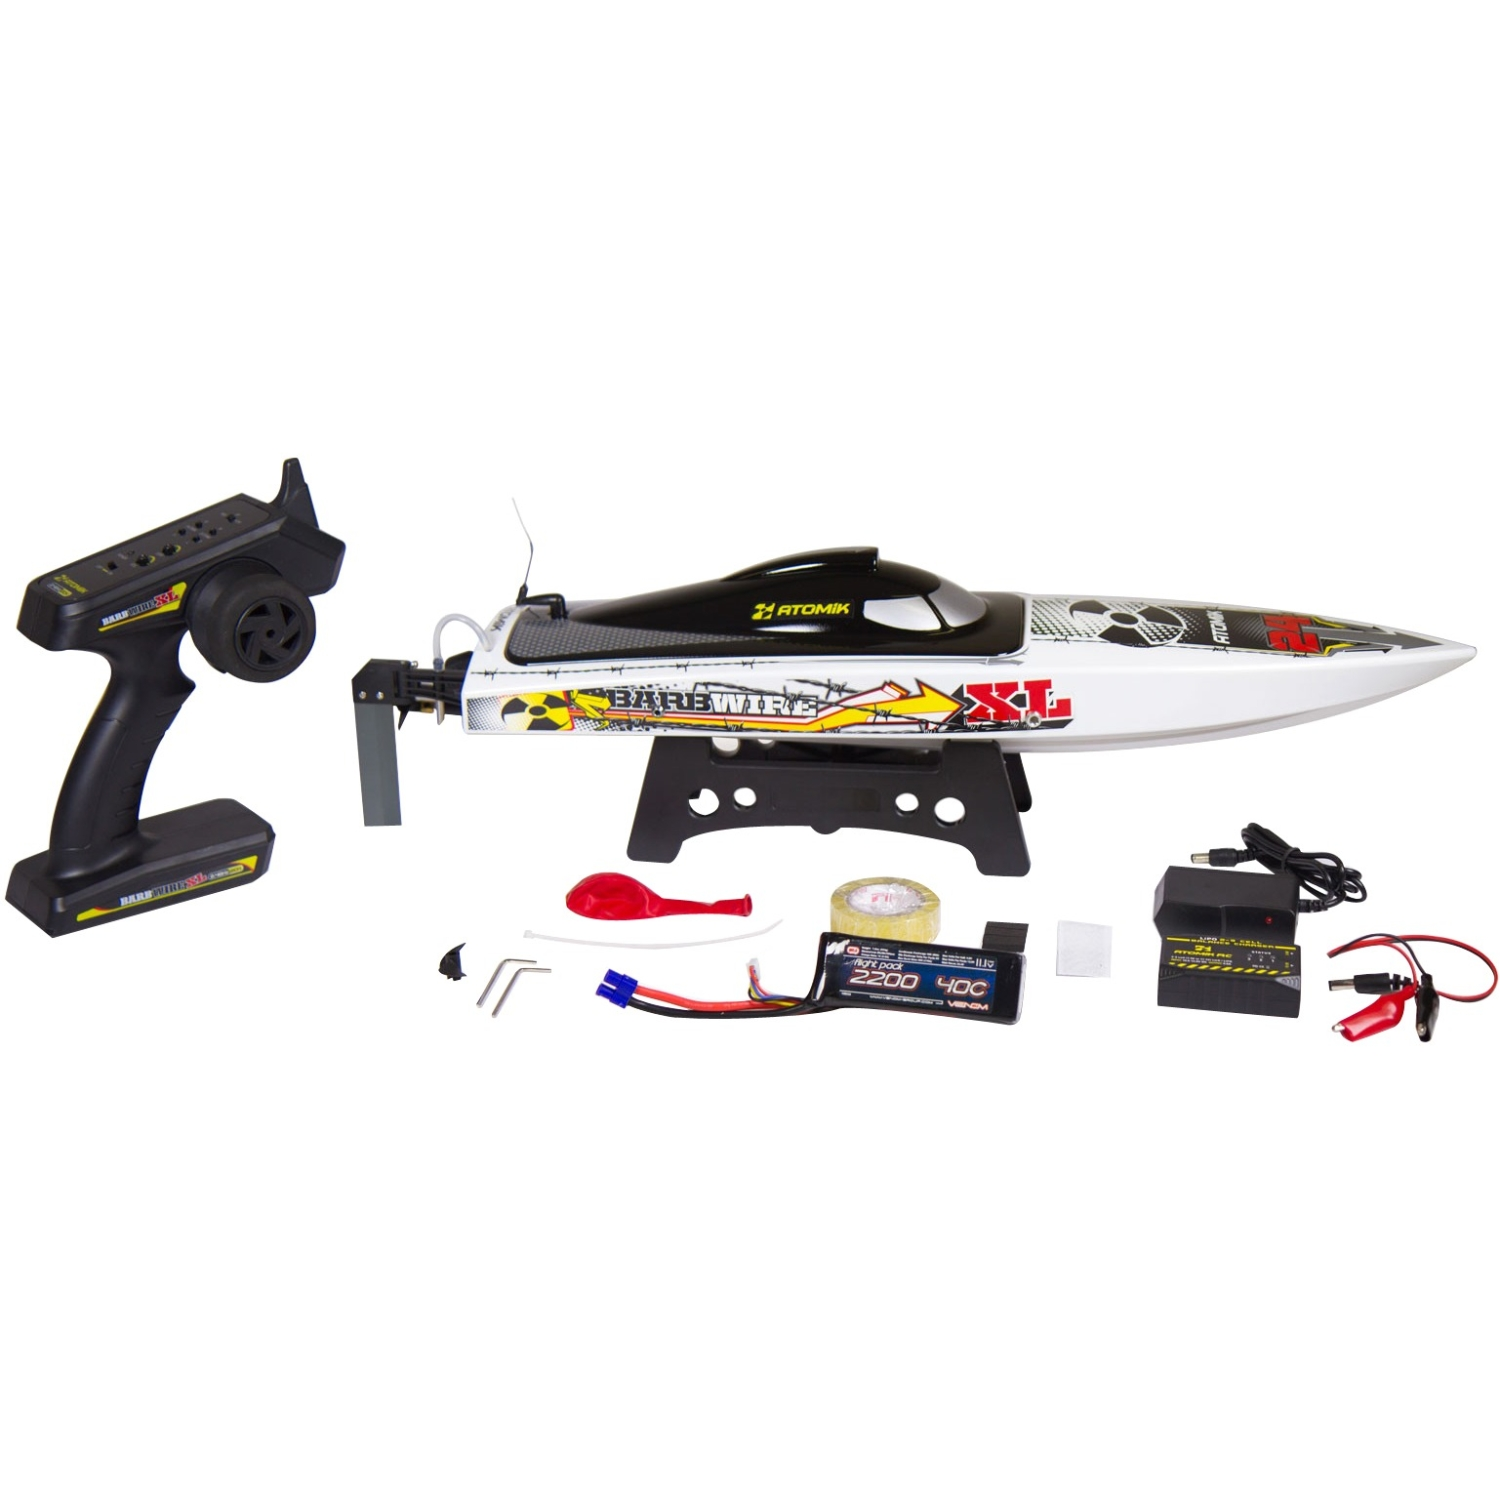 Atomik Barbwire Xl Rtr Brushless Rc Boat